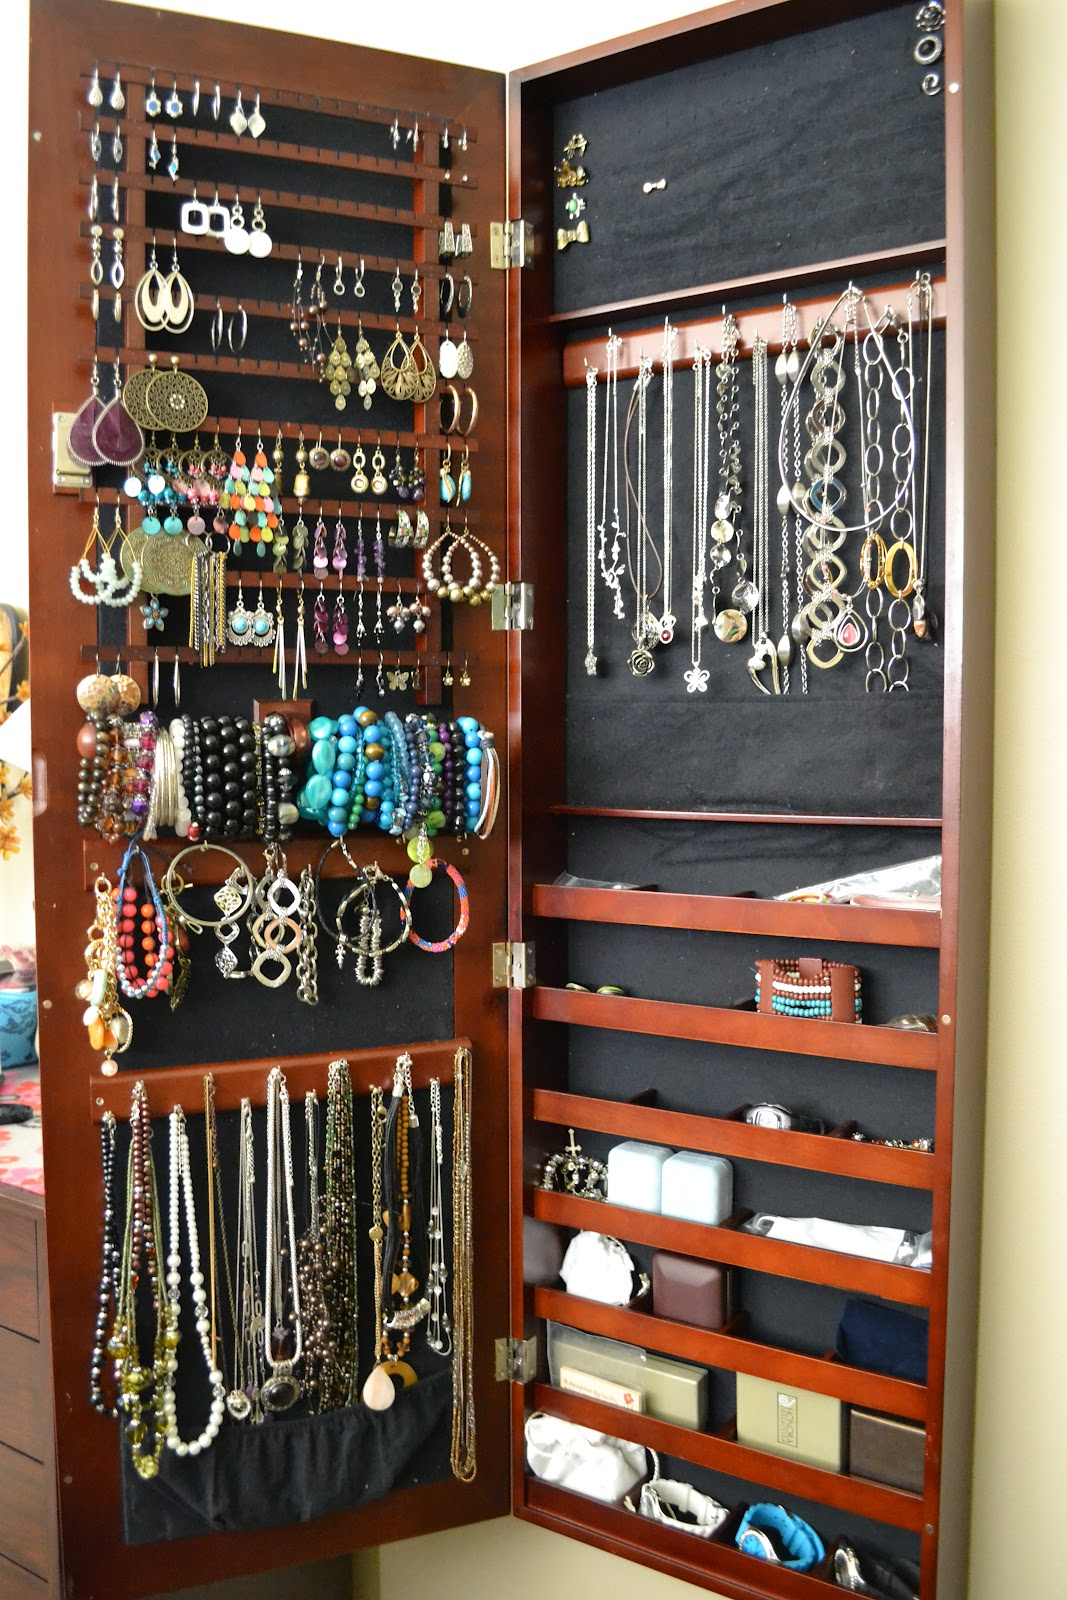 Jewelry Storage & Organization This Girl s Life Blog